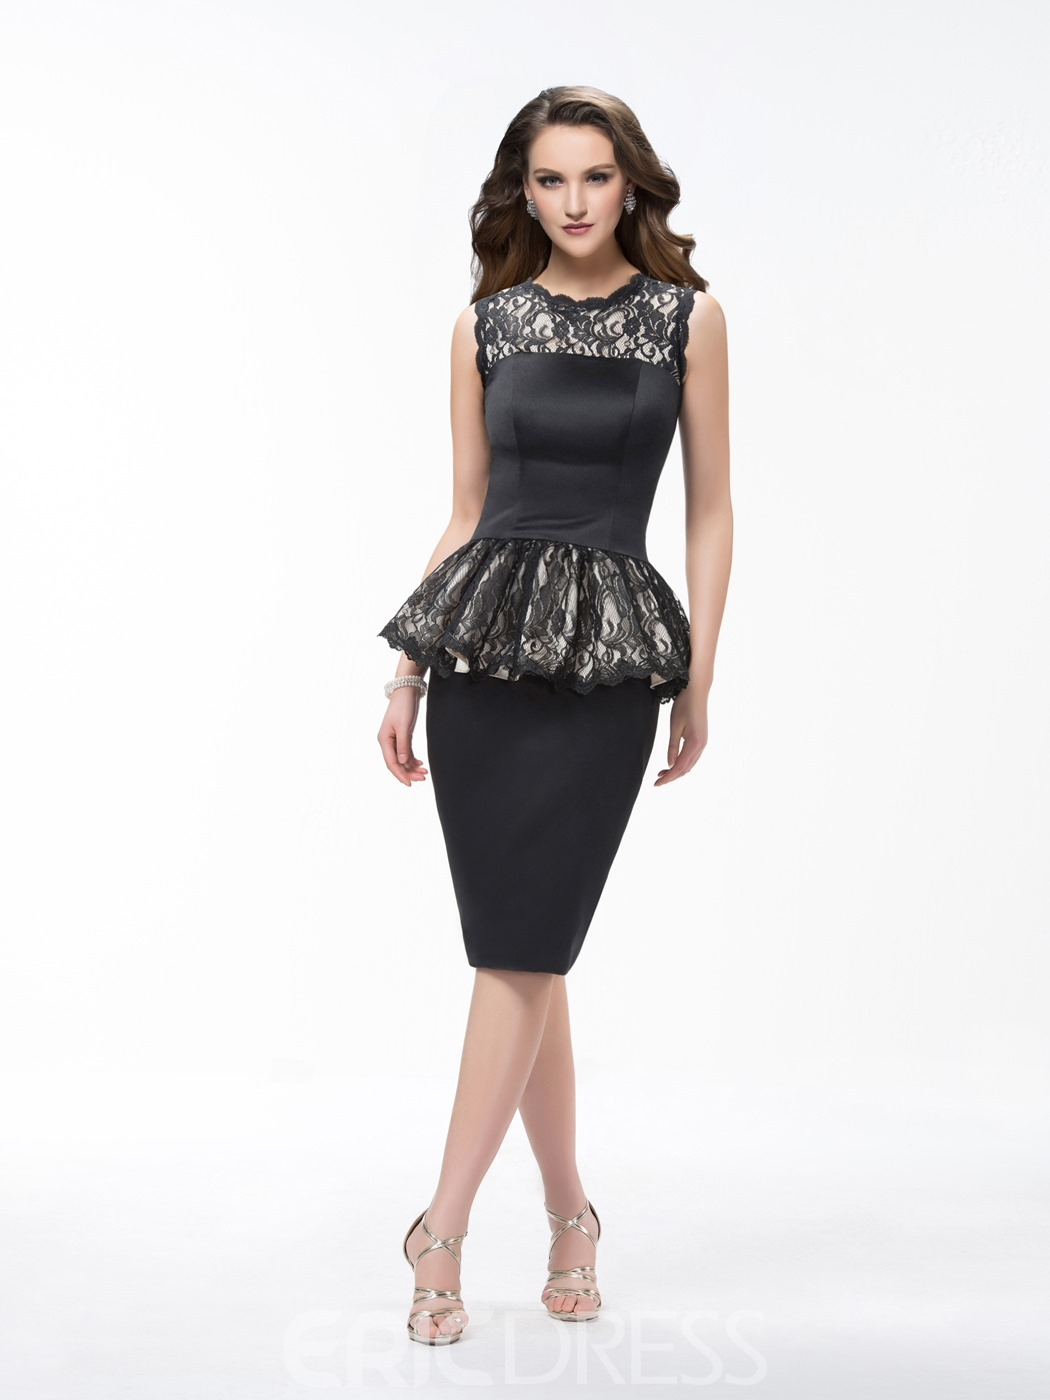 Elegant Sheath Knee Length Sleeveless Cocktail Dress